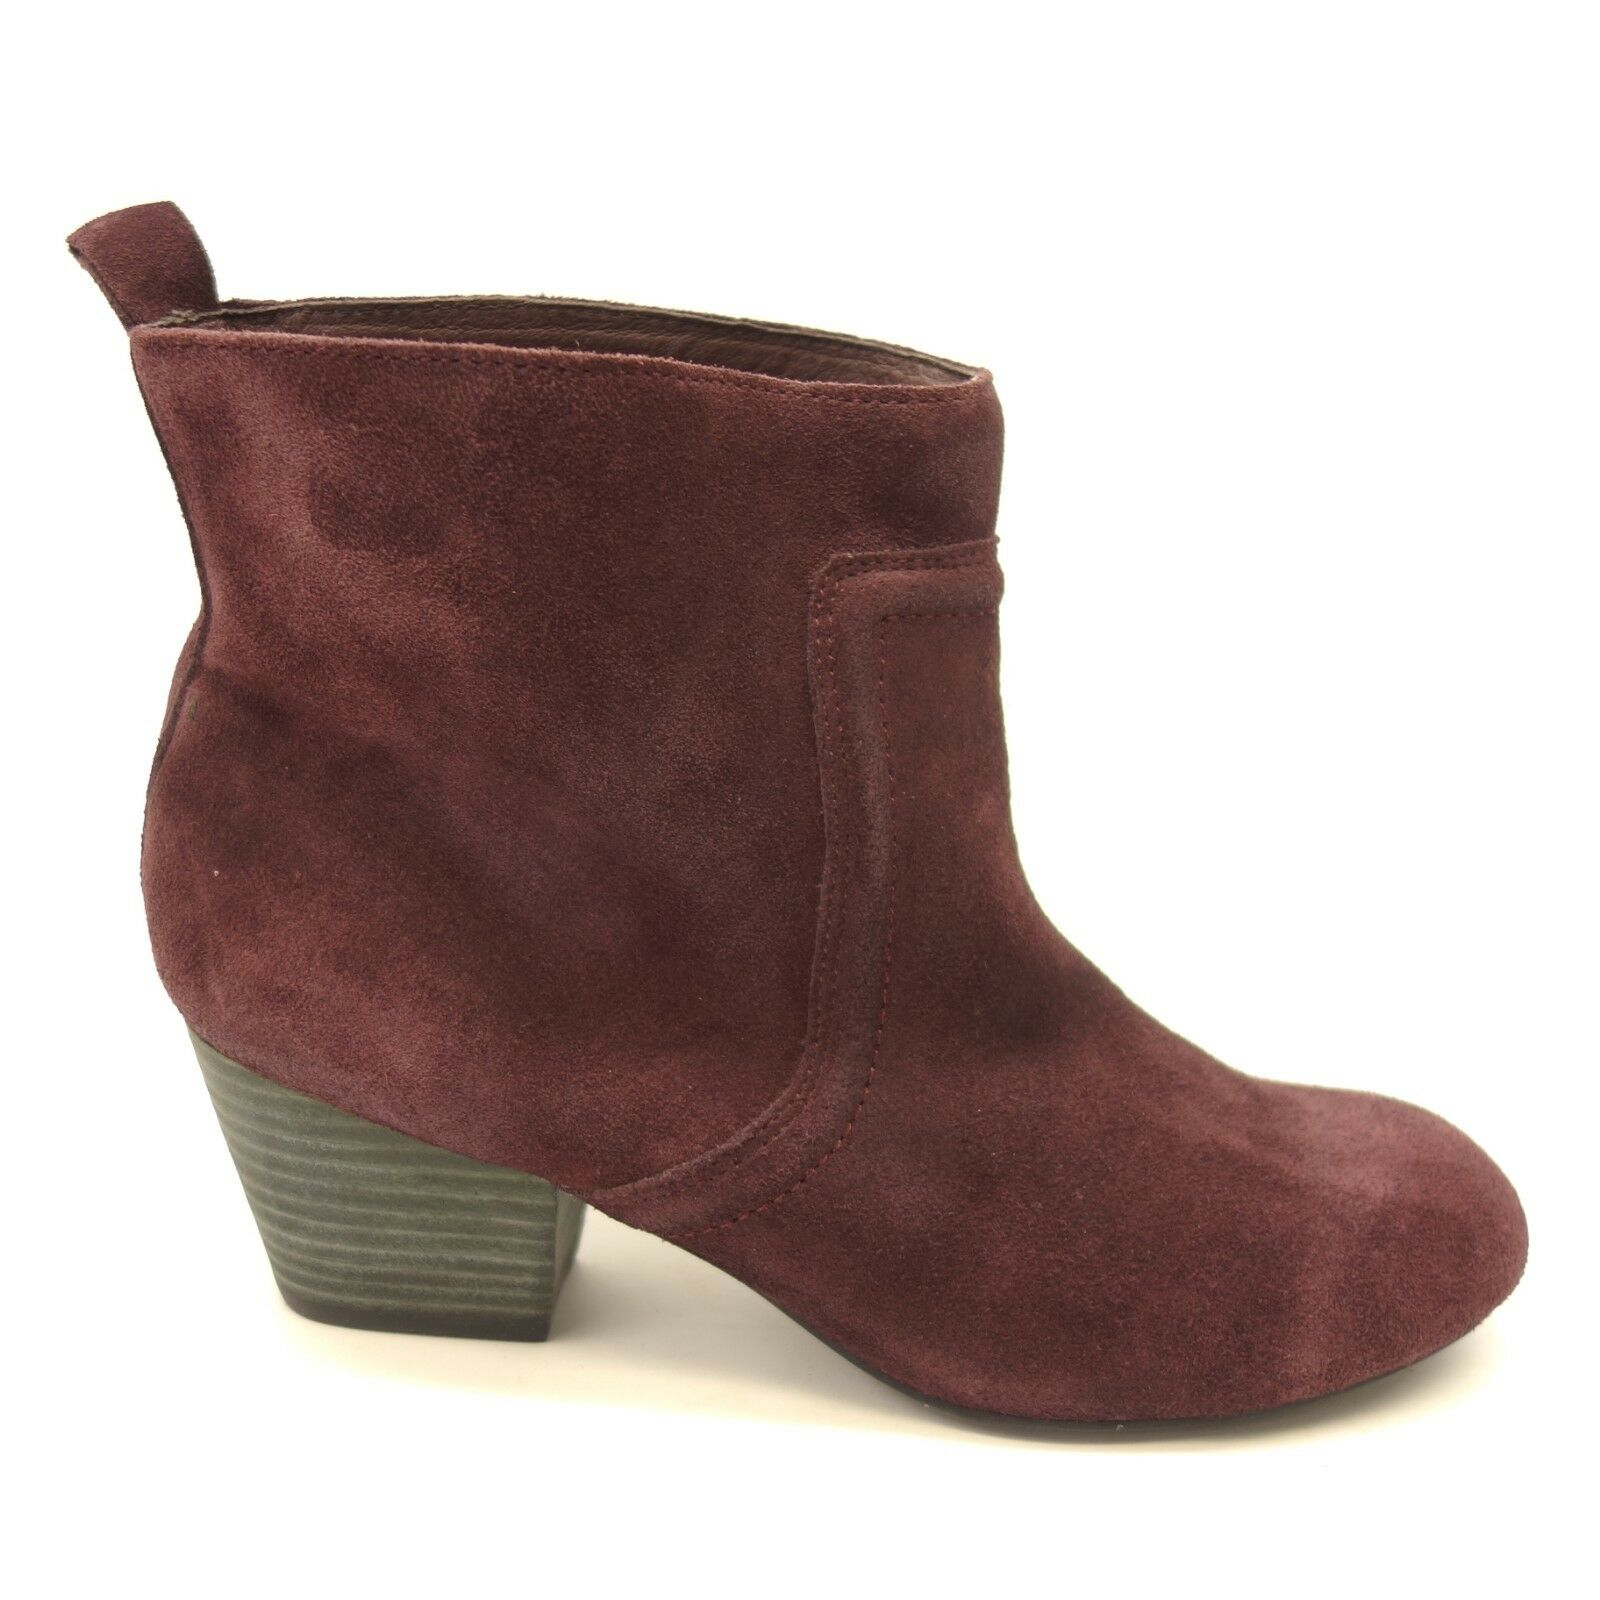 New Joes Jeans Womens Dark Purple Suede Ankle Boots Heeled Booties Sz 8.5 M